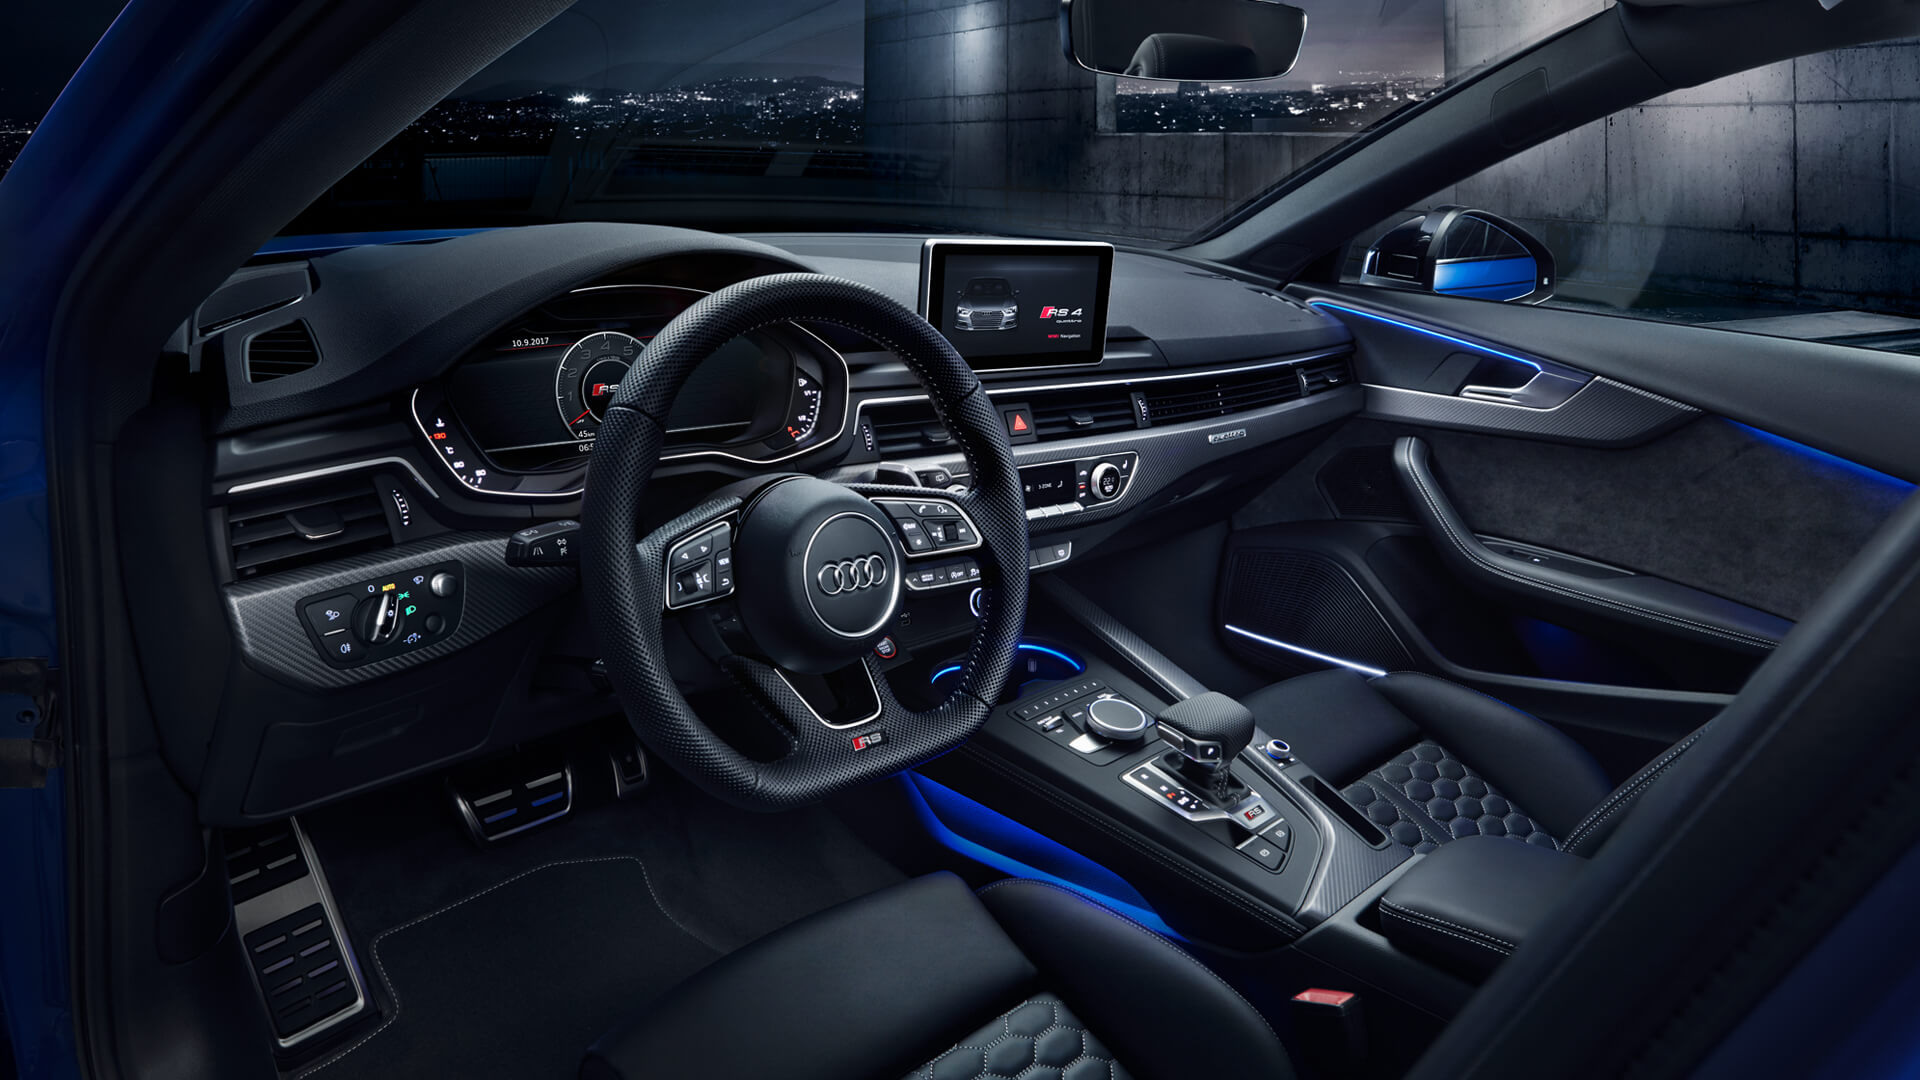 Gorgeous interior of the latest Audi RS4 Avant